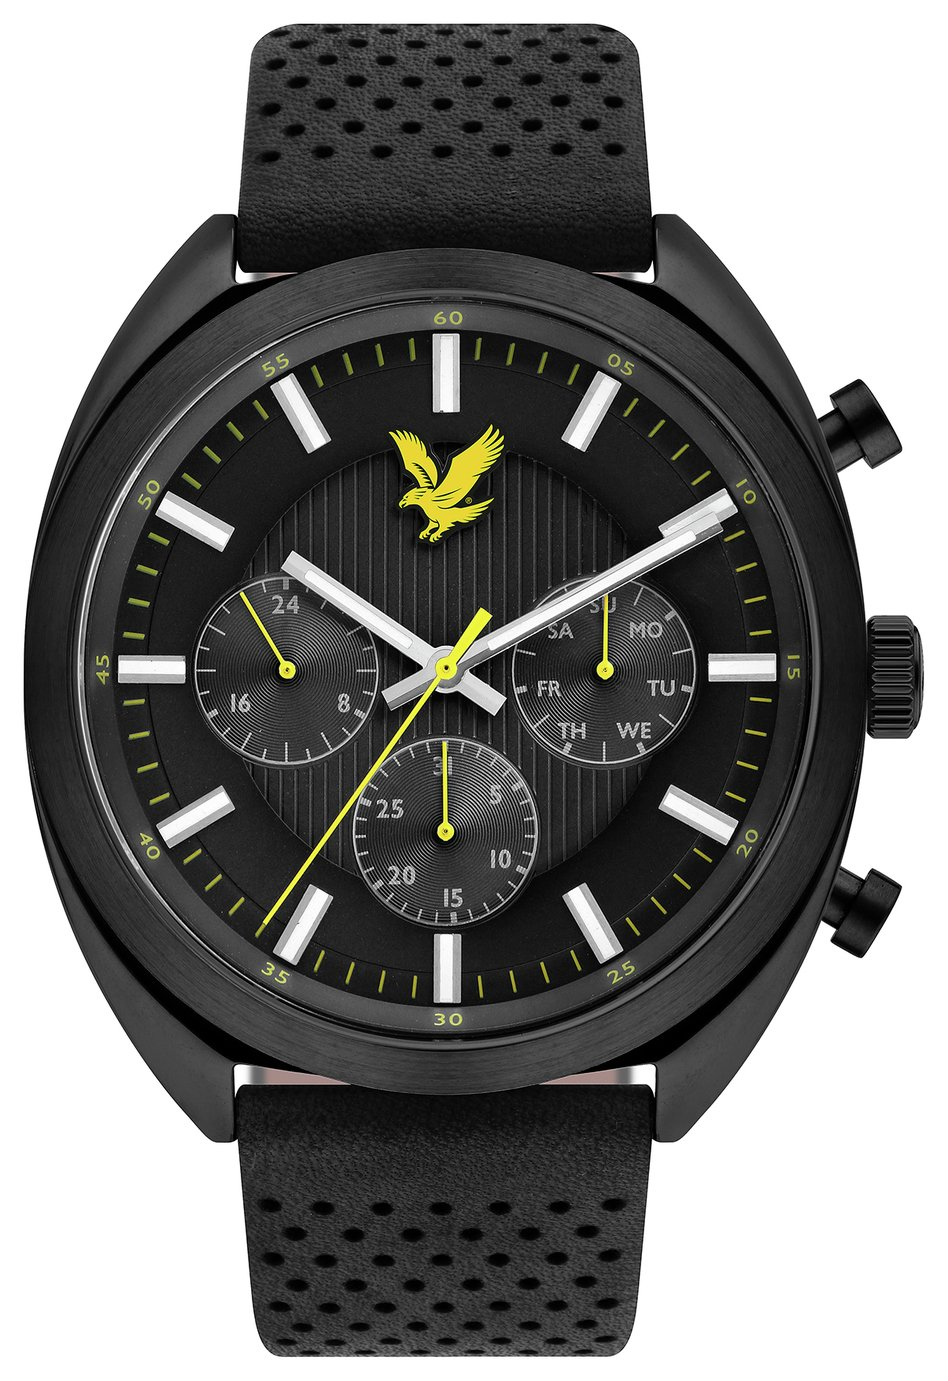 Lyle and Scott Men's Black Leather Strap Watch